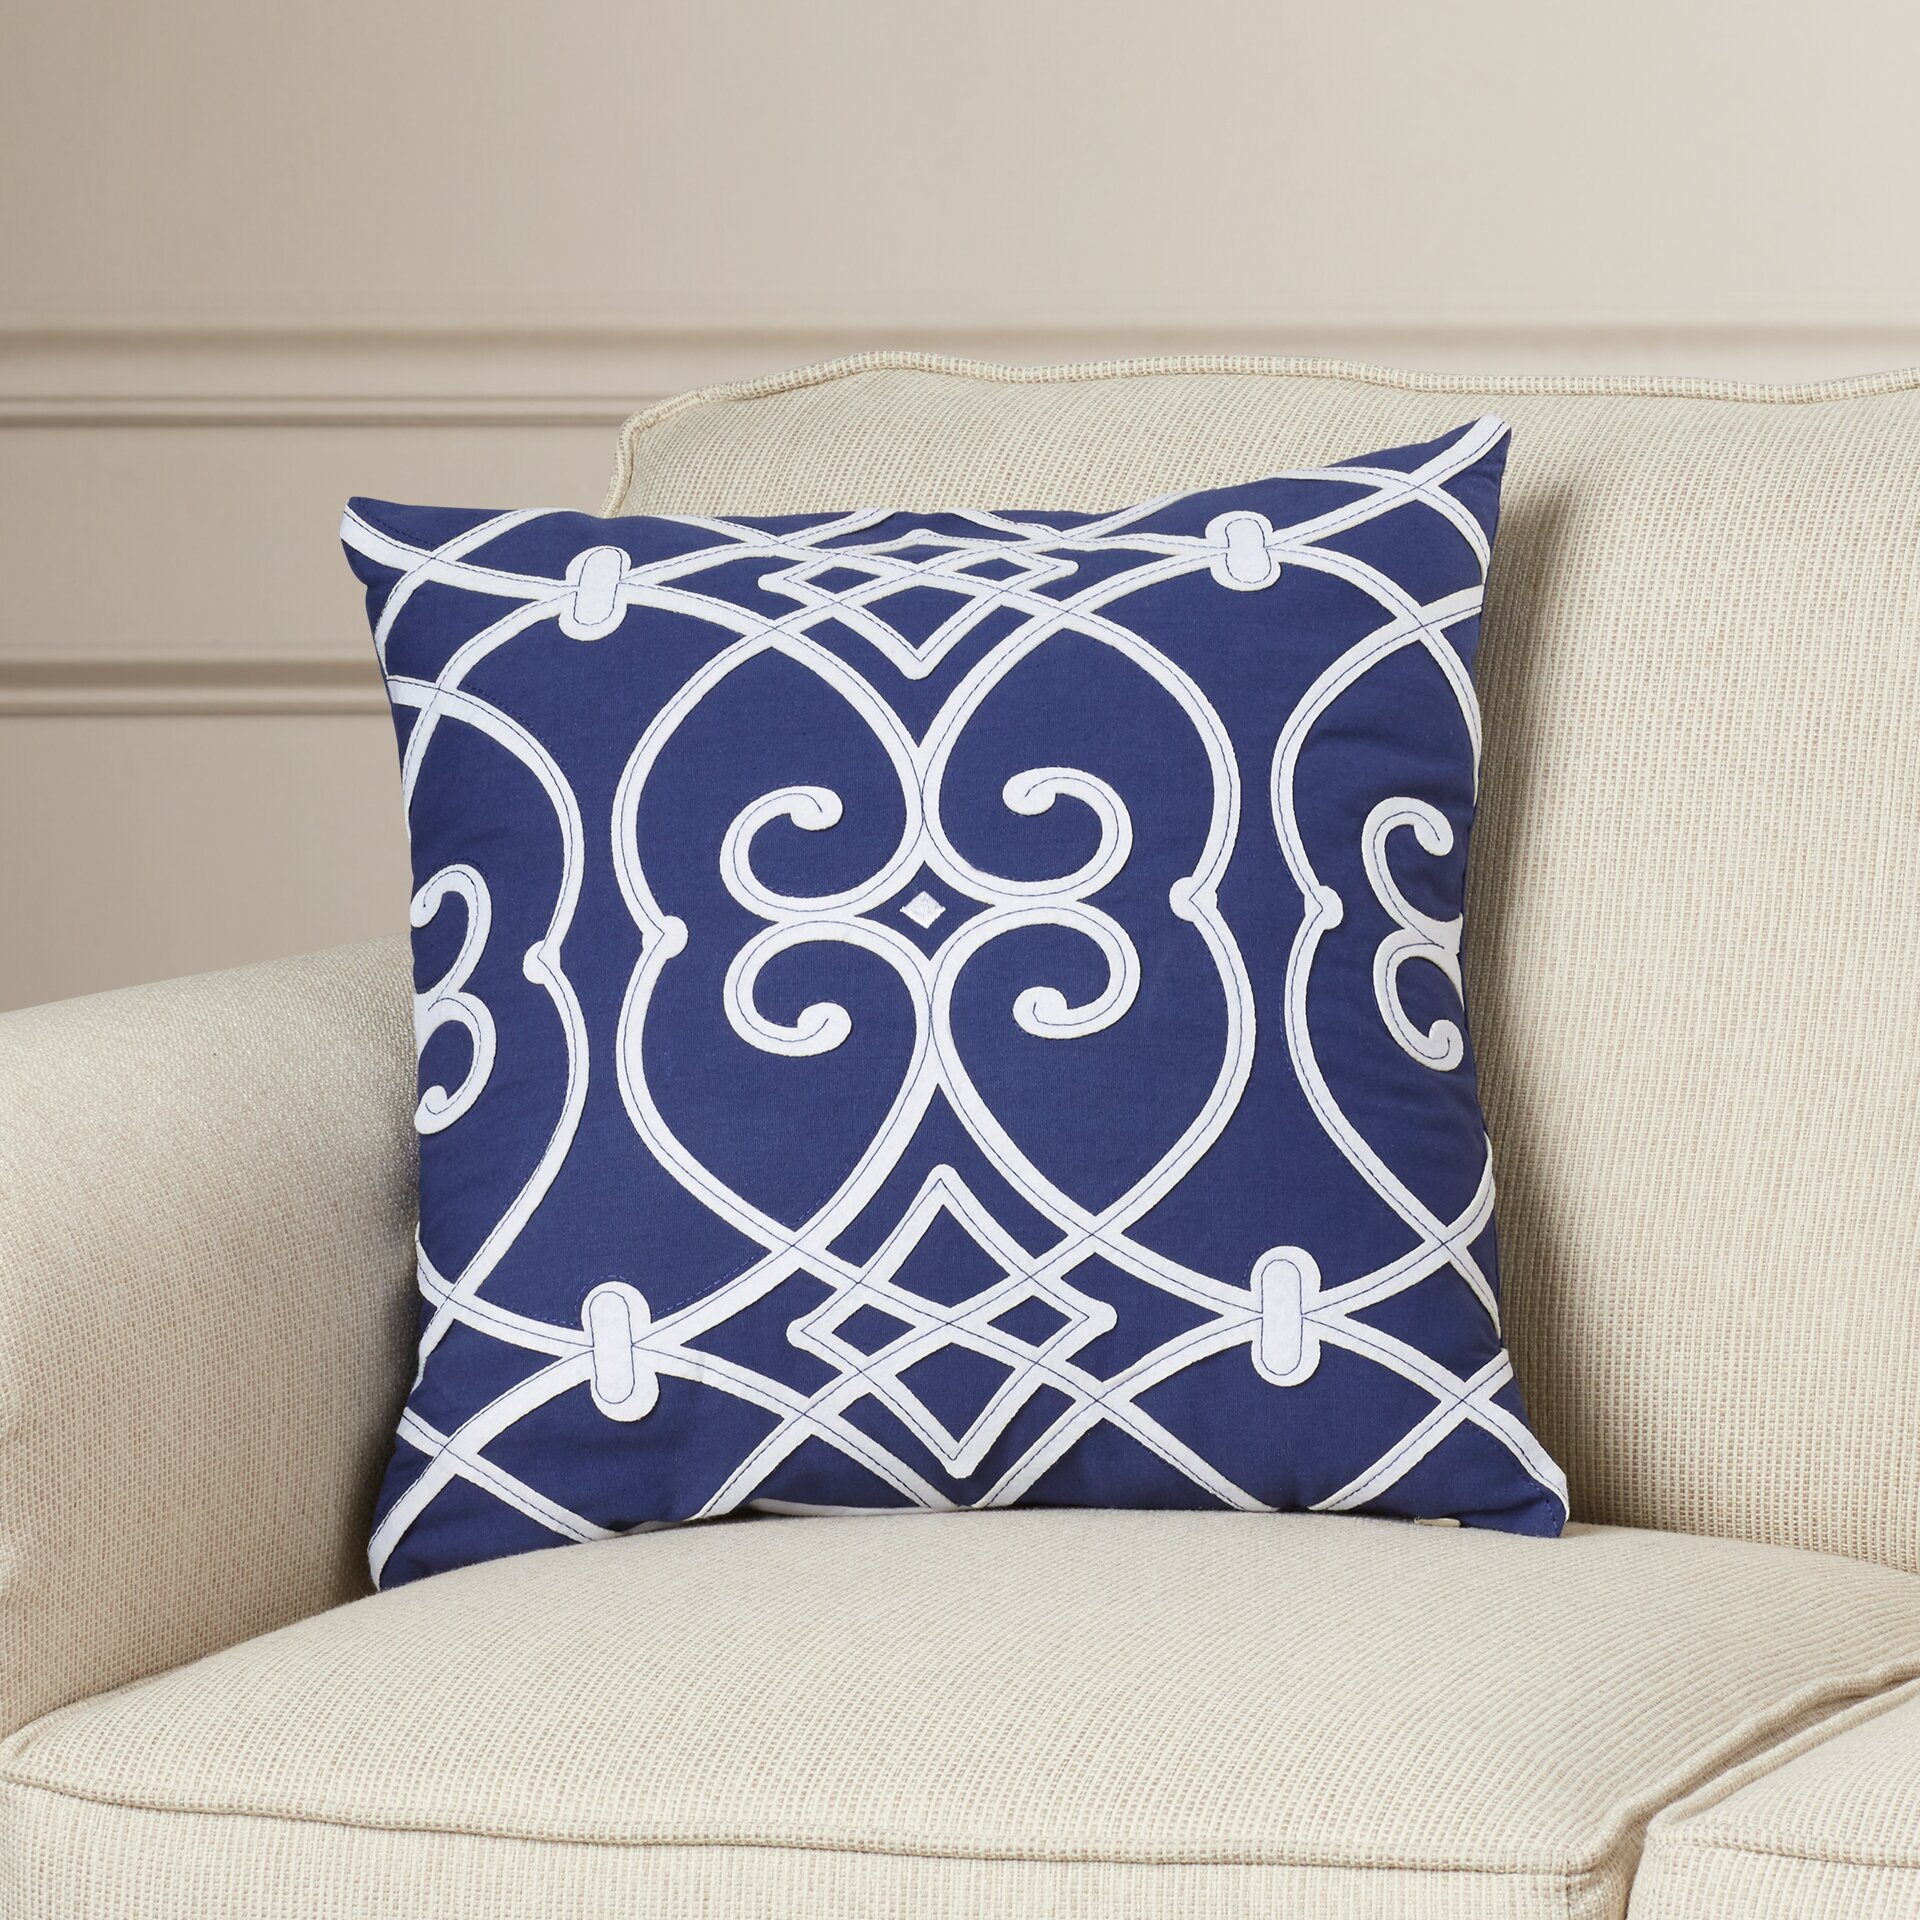 Throw Pillows Ballard Design : Patterned Outdoor Throw Pillows - Blond Anal Amateur